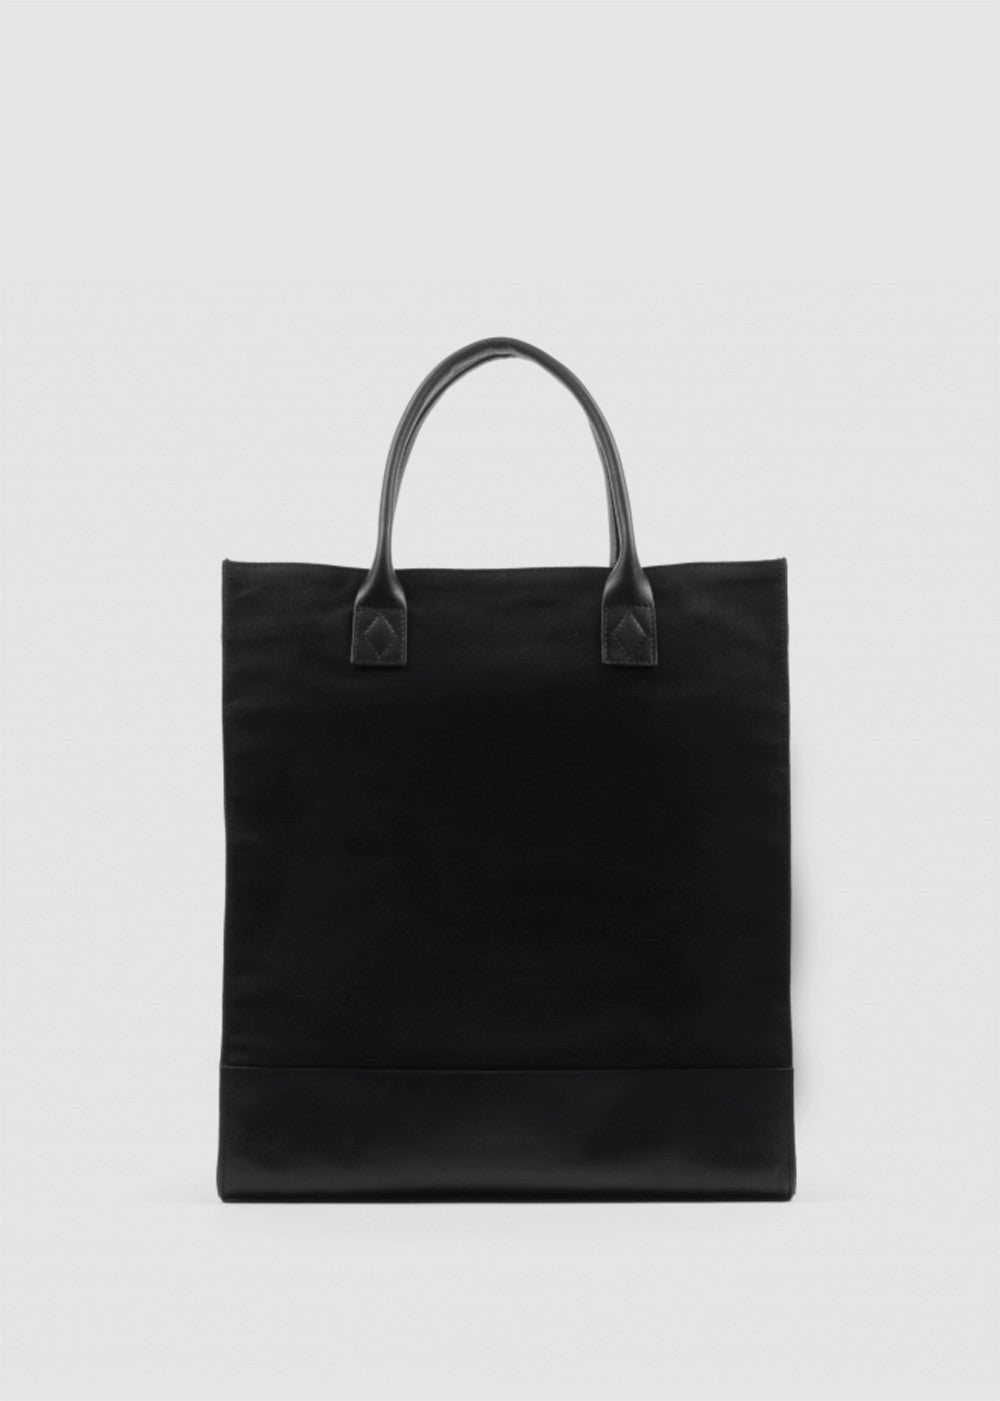 New Tote Bag Canvas Black